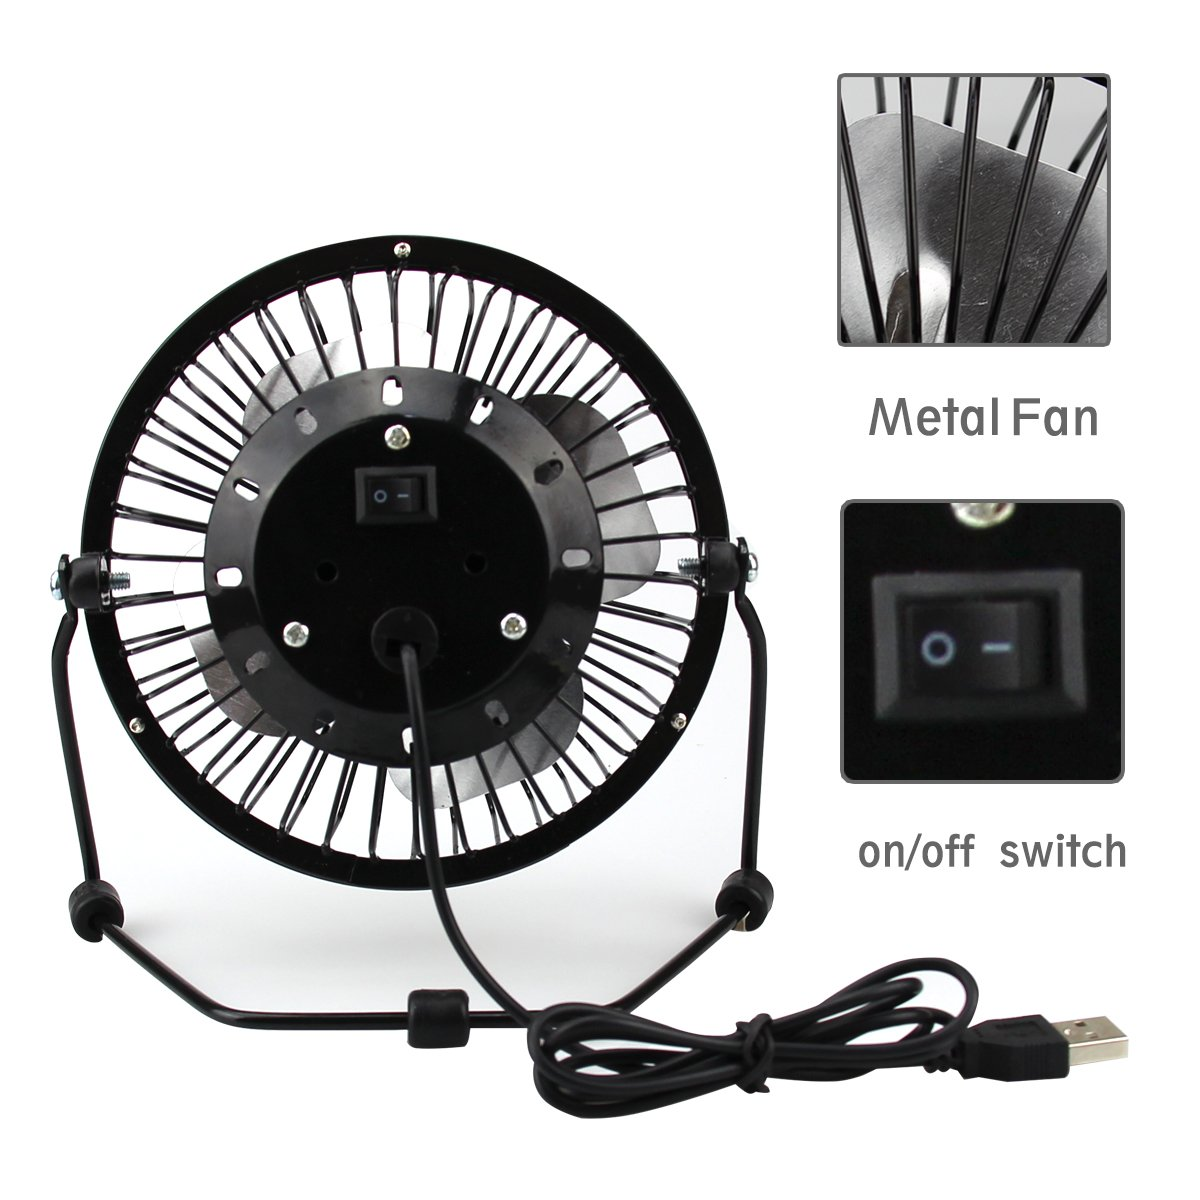 USB Mini Desktop Fan, Naisidier 4 inch Personal Mini Table Fan with Aluminum Blades in Quiet Wind - Perfect for Home Office Laptop, Black